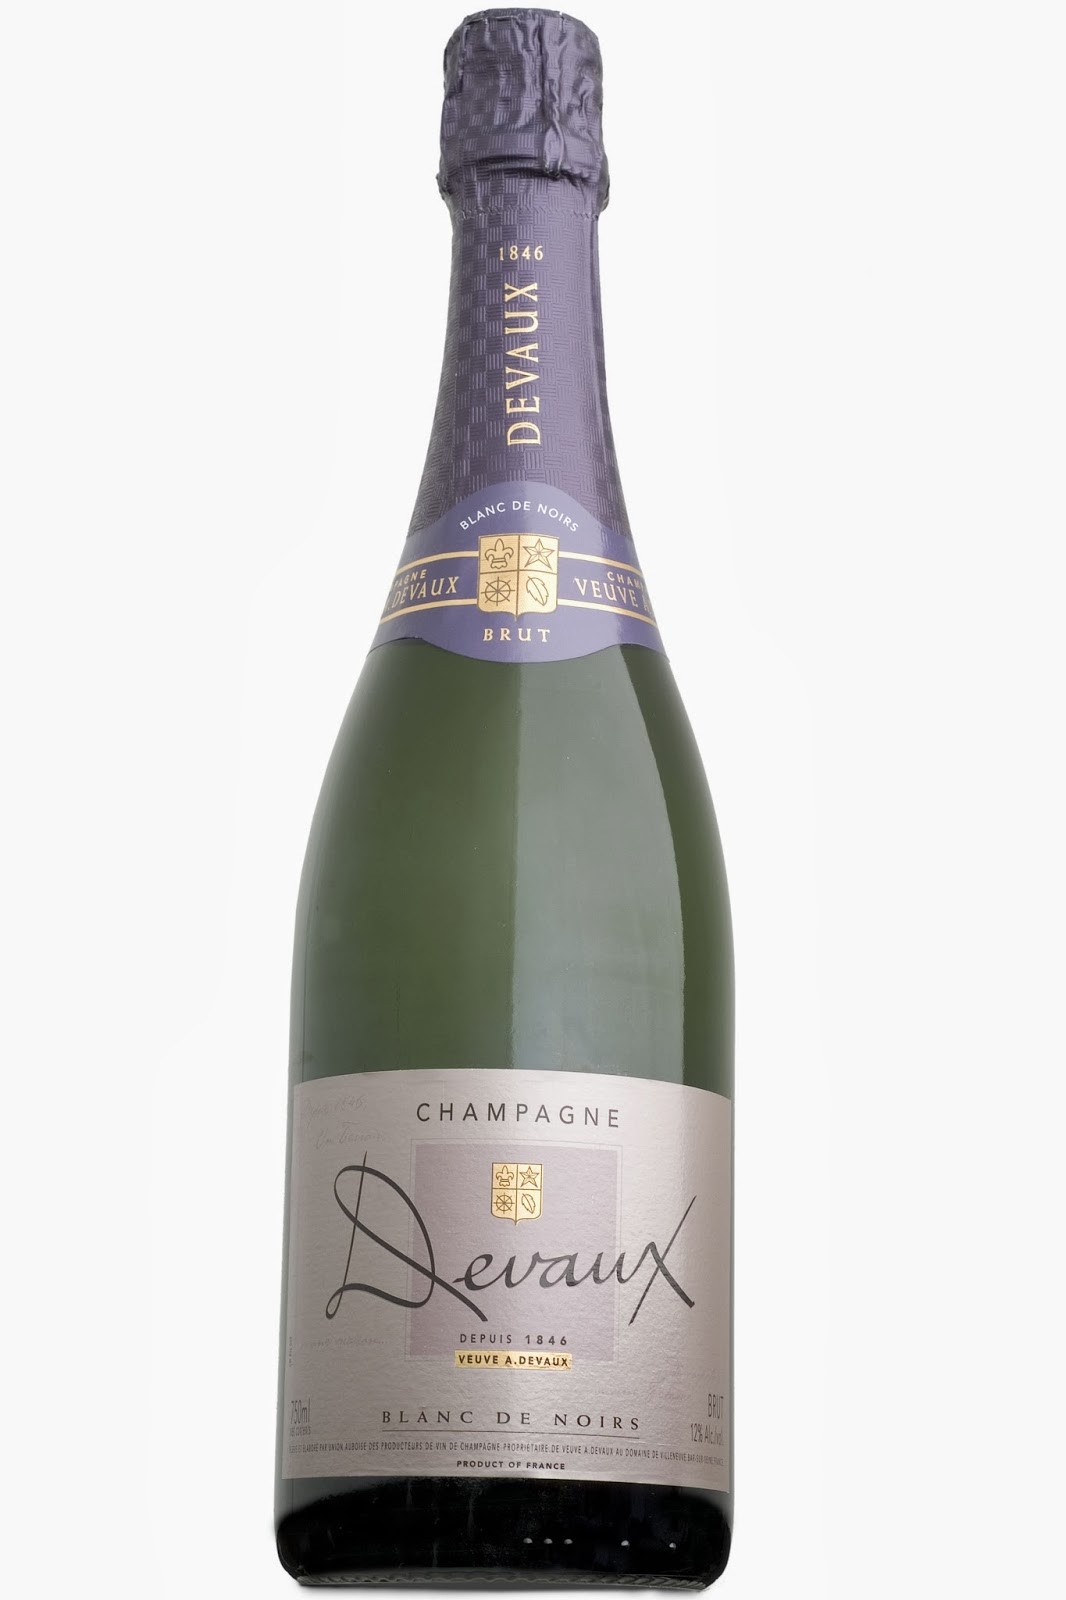 Tasting Notes Chanoine Blanc de Noirs Brut Champagne France